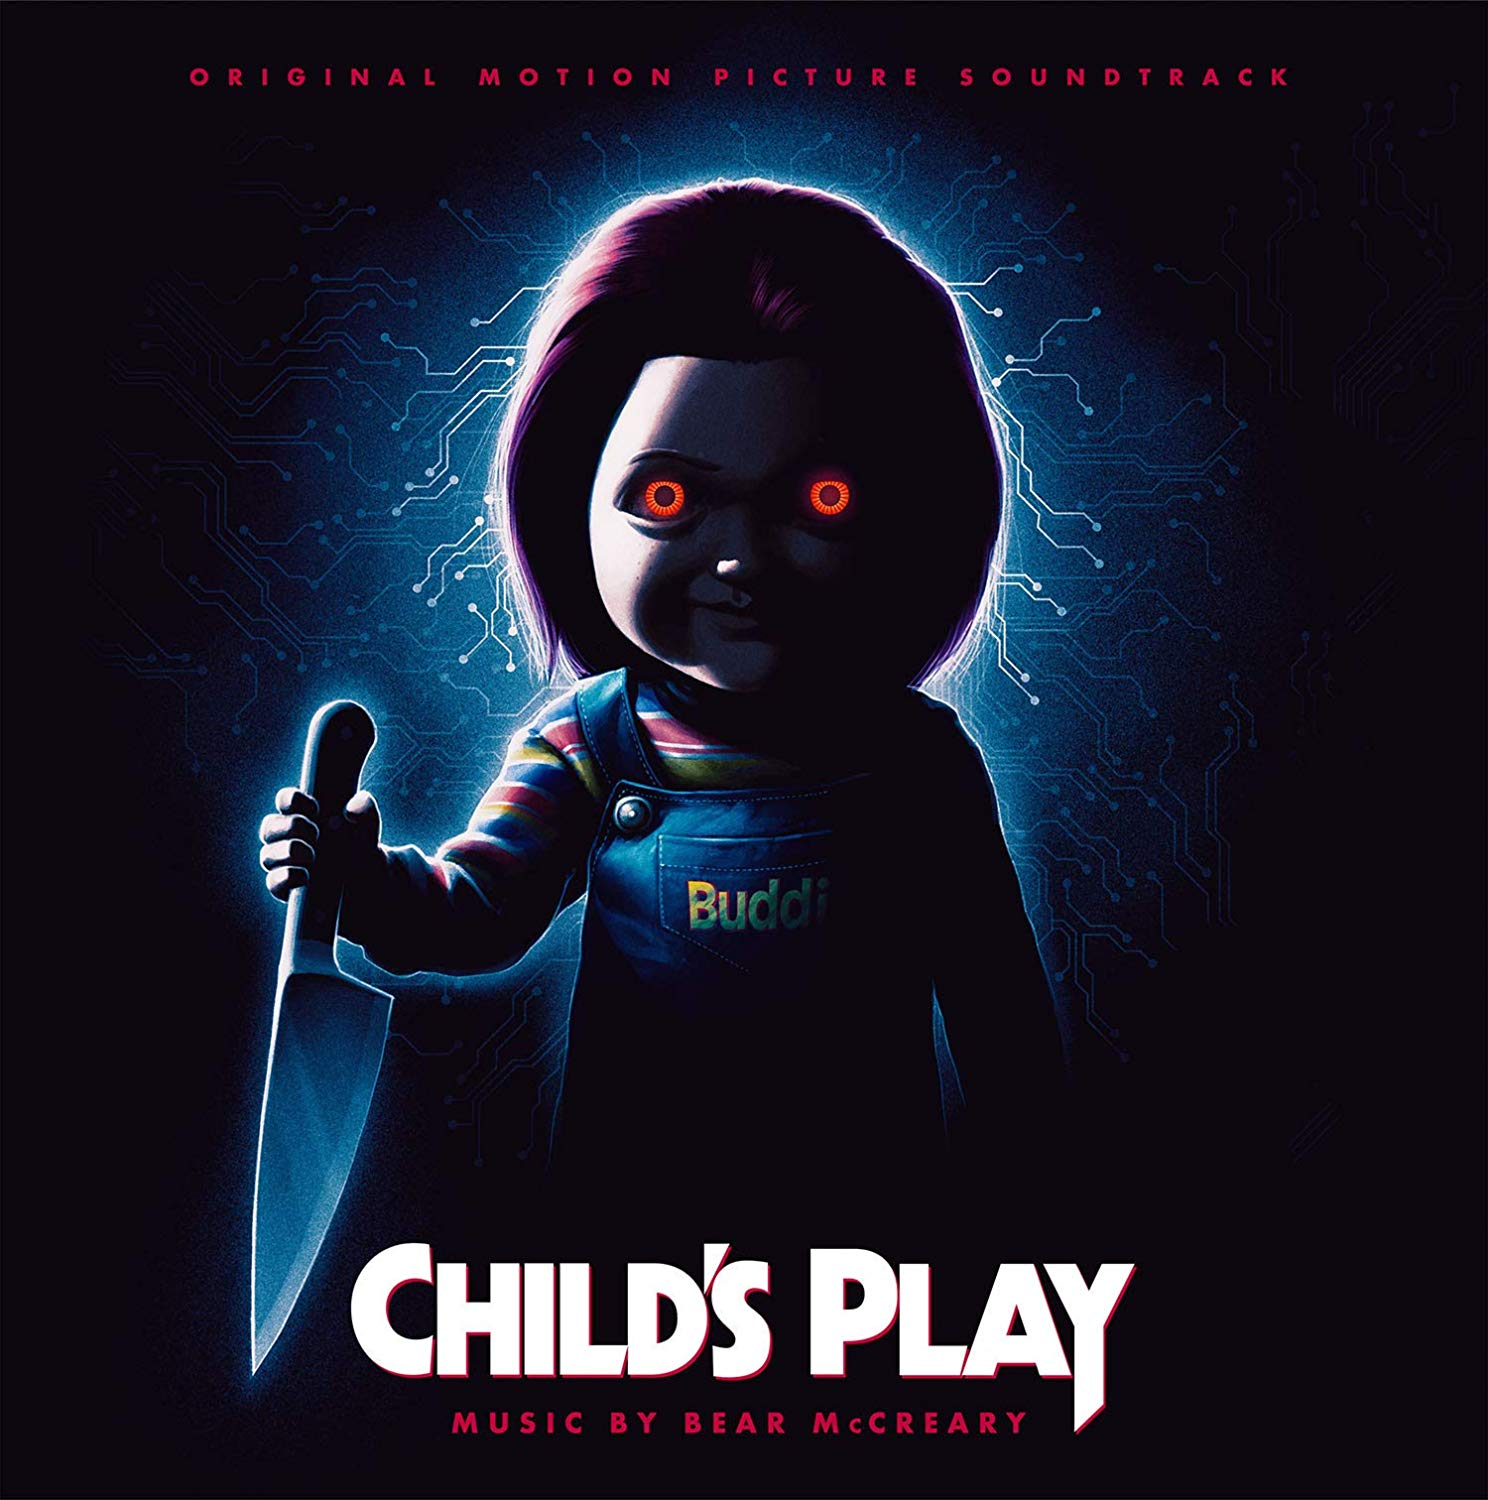 Child's play - La bambola assassina (2019) (vinile)